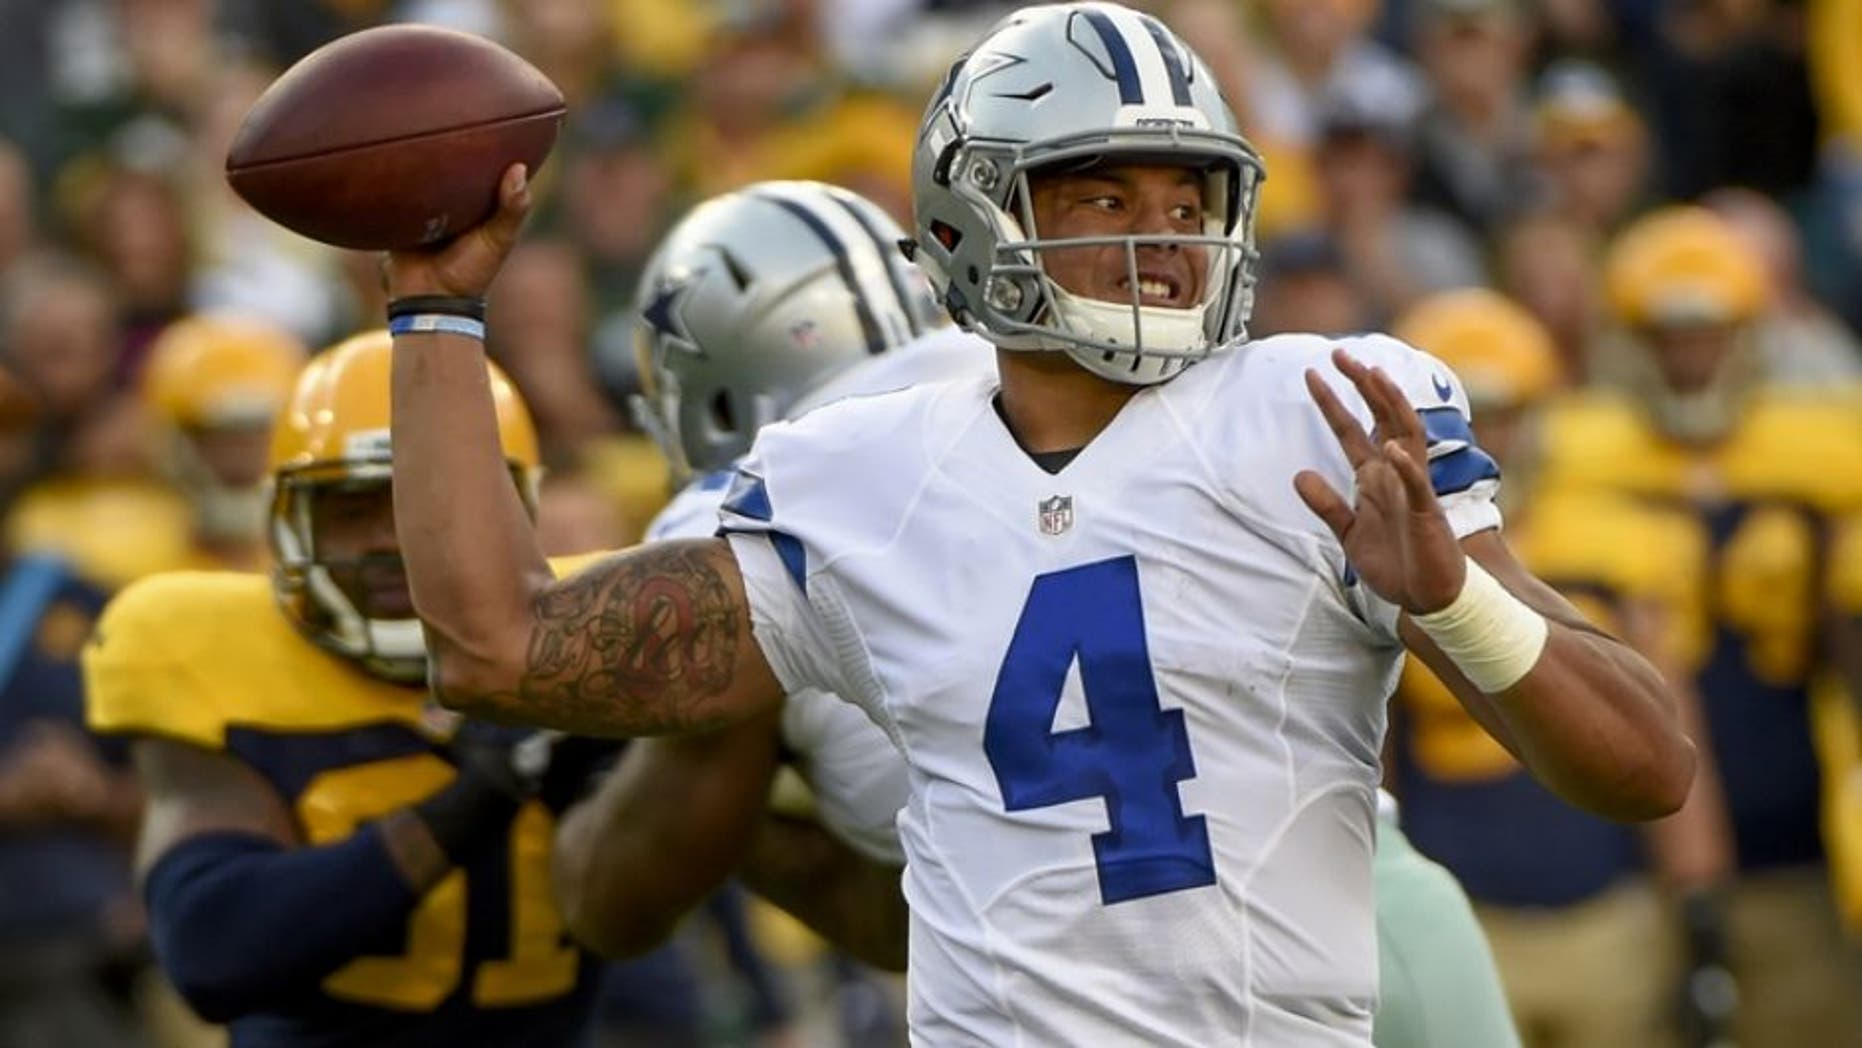 a3727e6477f4 A pit bull belonging to Dallas Cowboys quarterback Dak Prescott will be the  focus of a